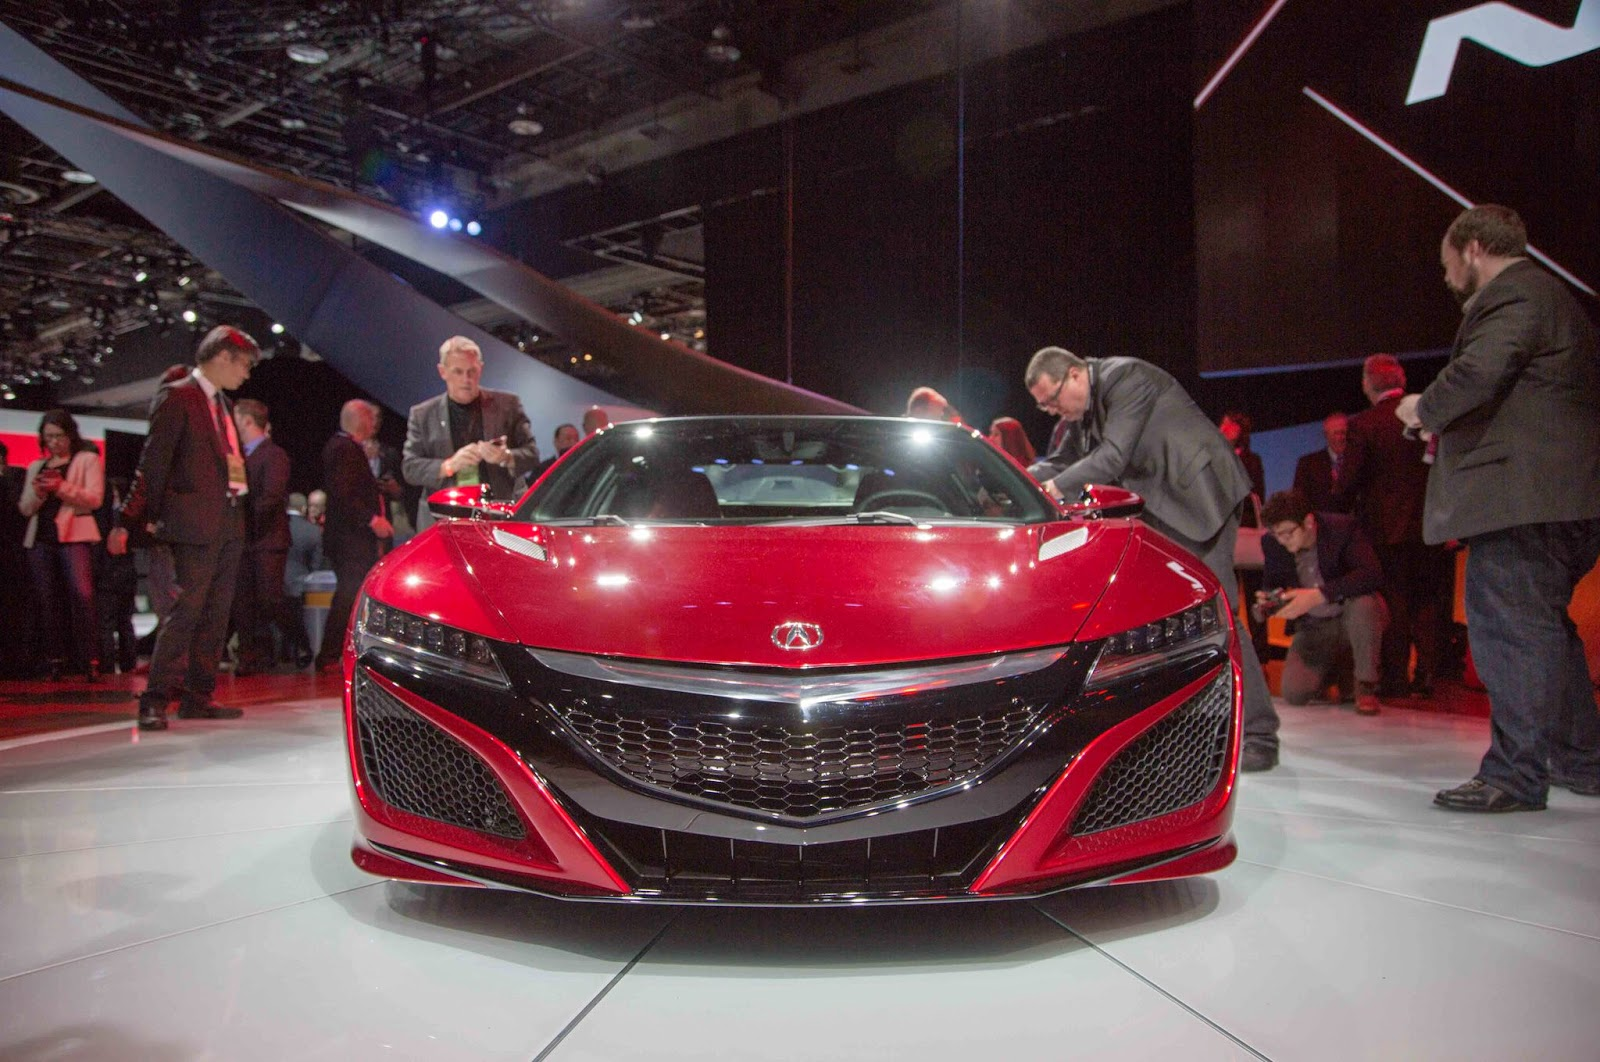 2016 Acura NSX Unveiled - AWD & Twin Turbo V6 Hybrid Included